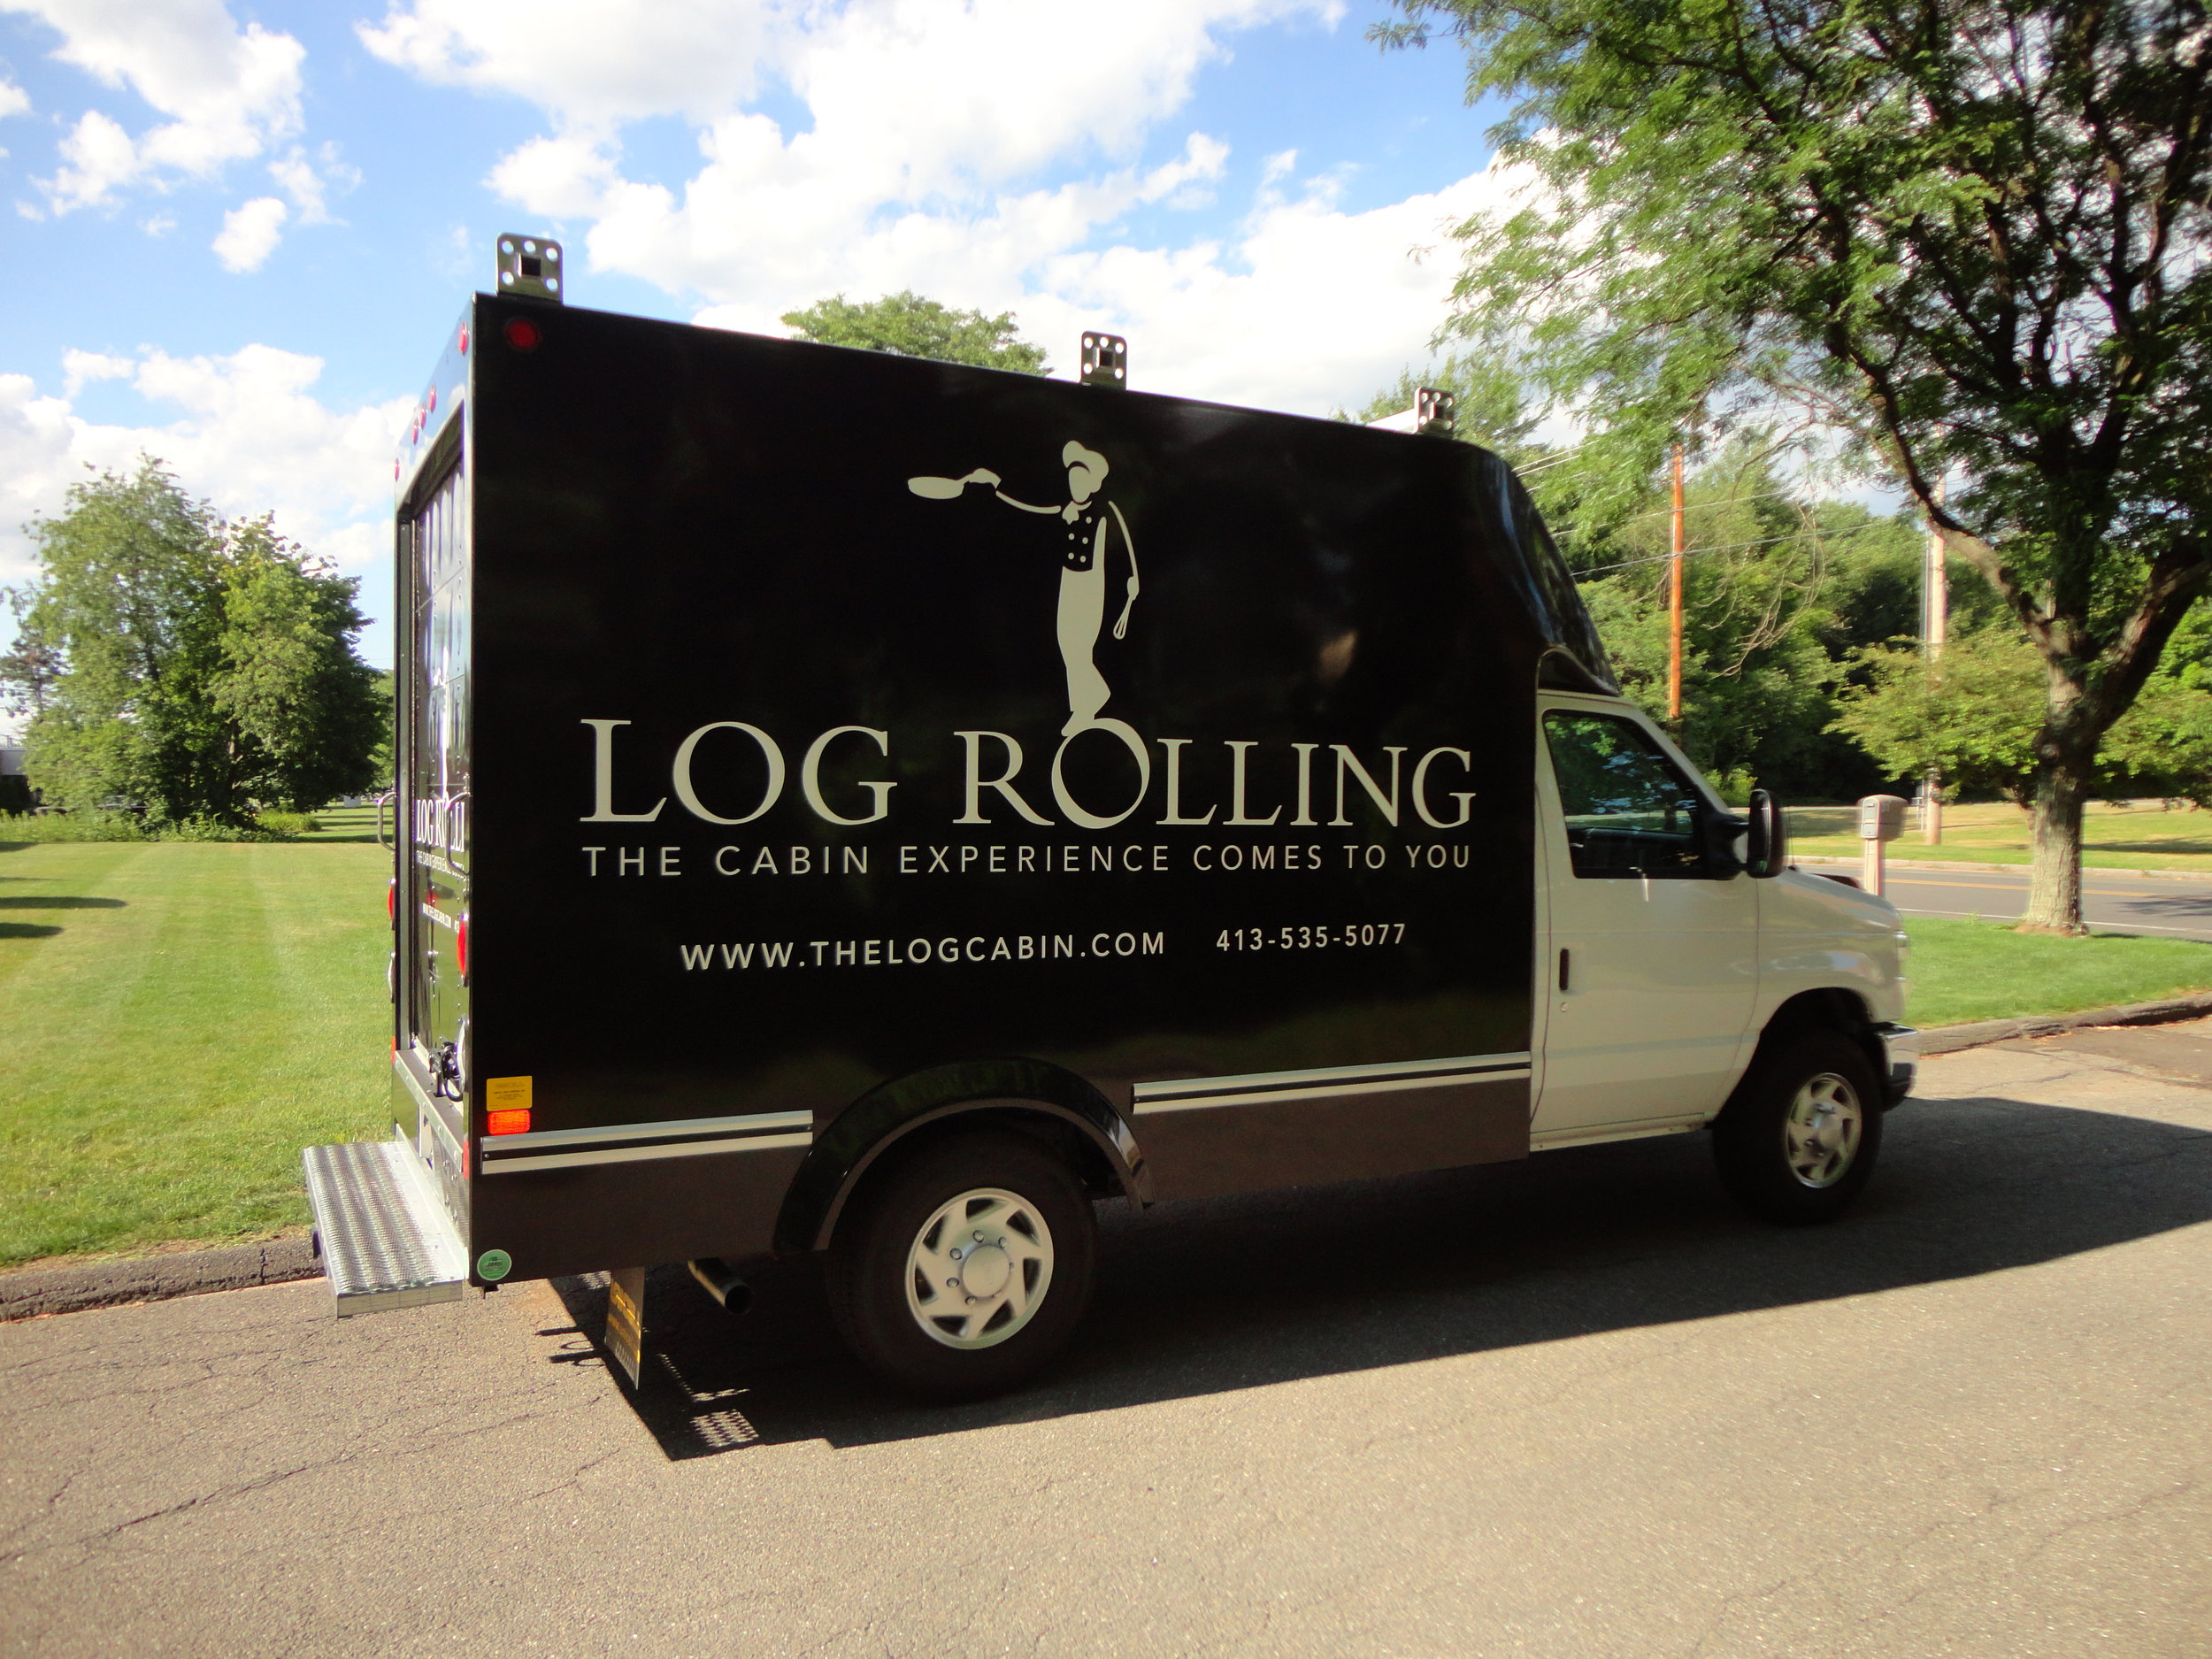 Delaney Log Cabin - Log Rolling Box Truck 7.11.14 (9).jpg